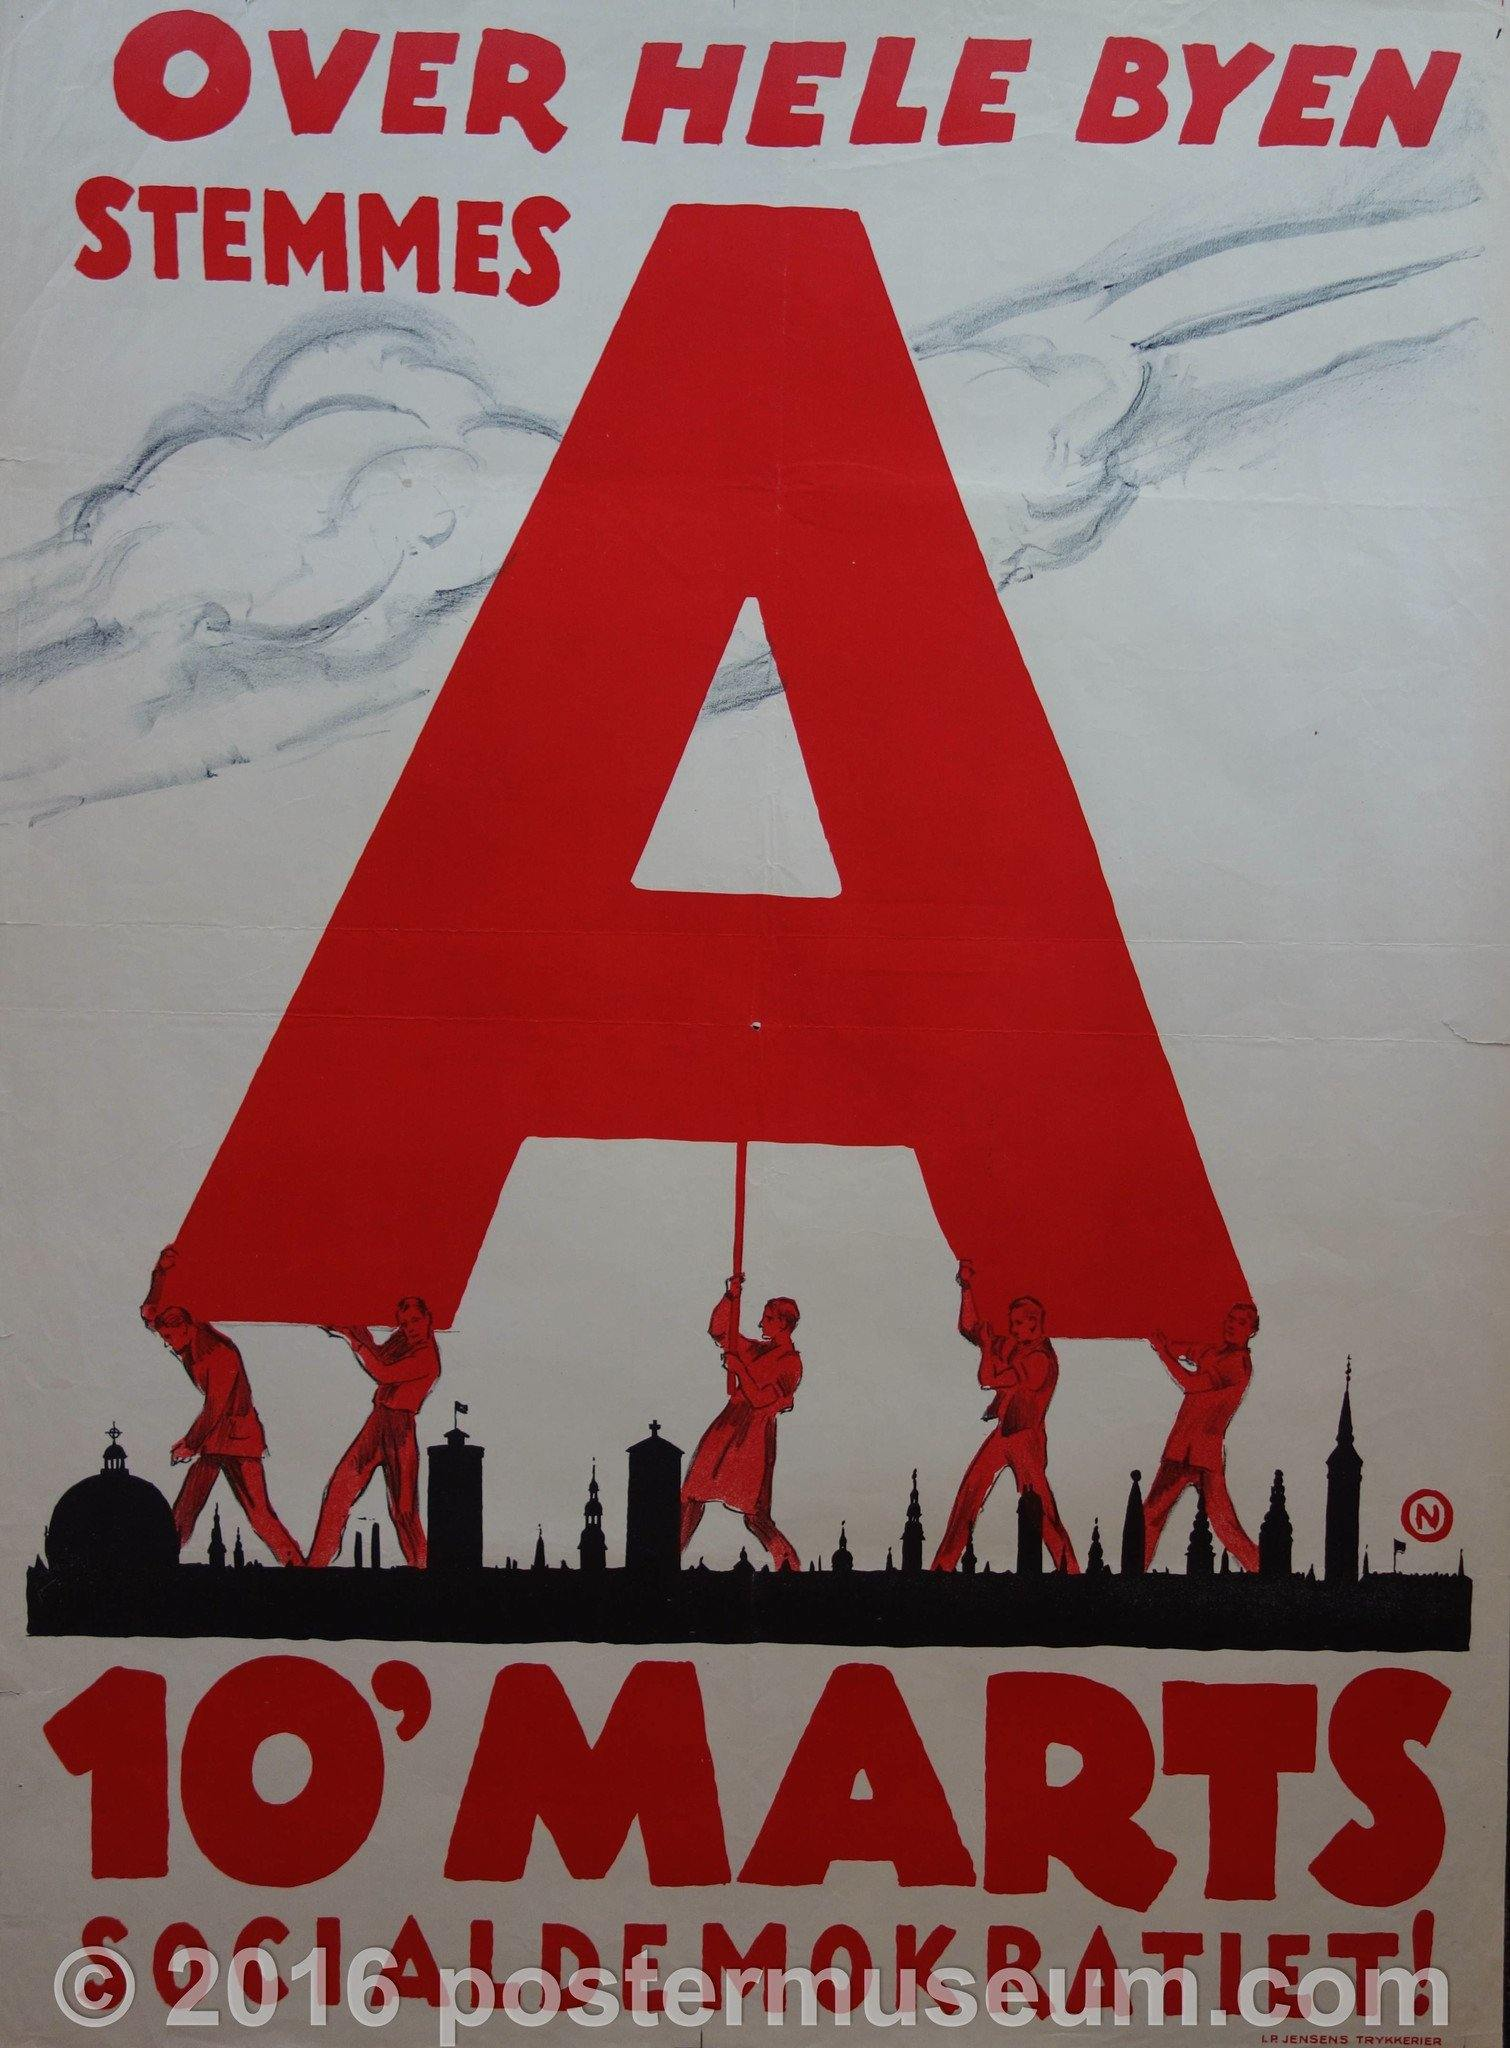 10' Marts - Poster Museum